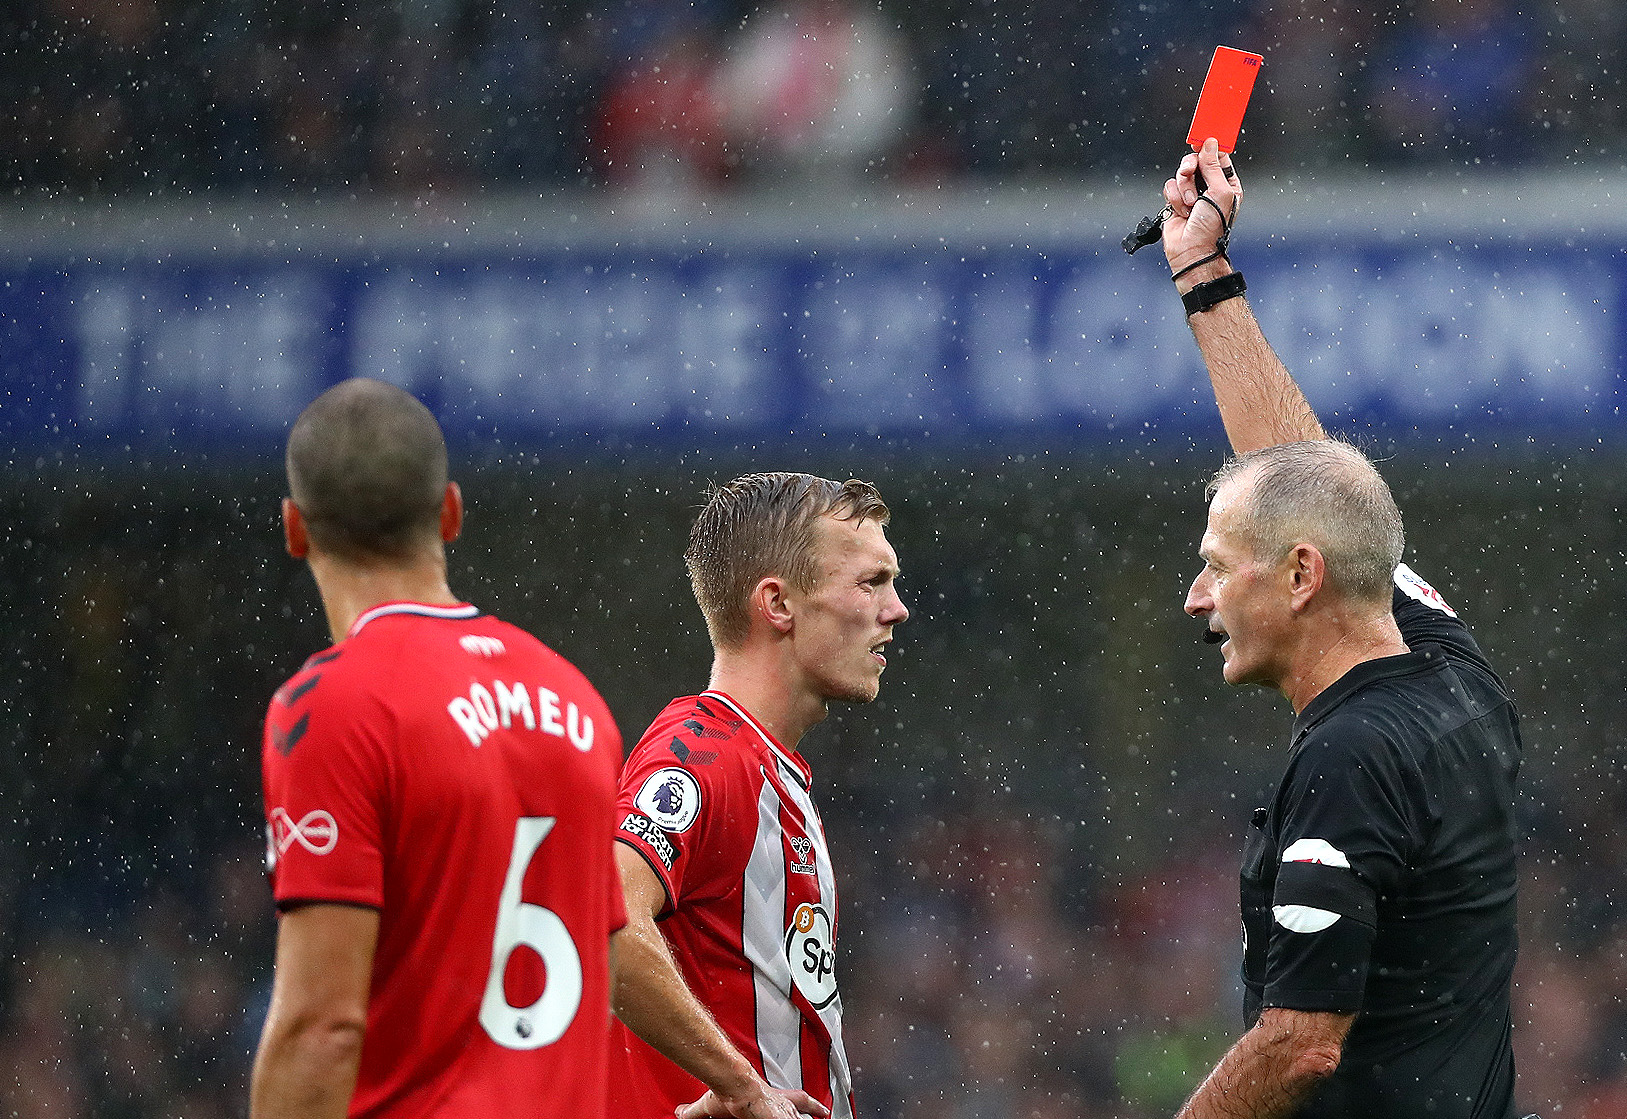 Chelsea v Southampton - Premier League, James Ward-Prowse, red card, suspension, Timo Werner, Ben Chilwell, Chalobah